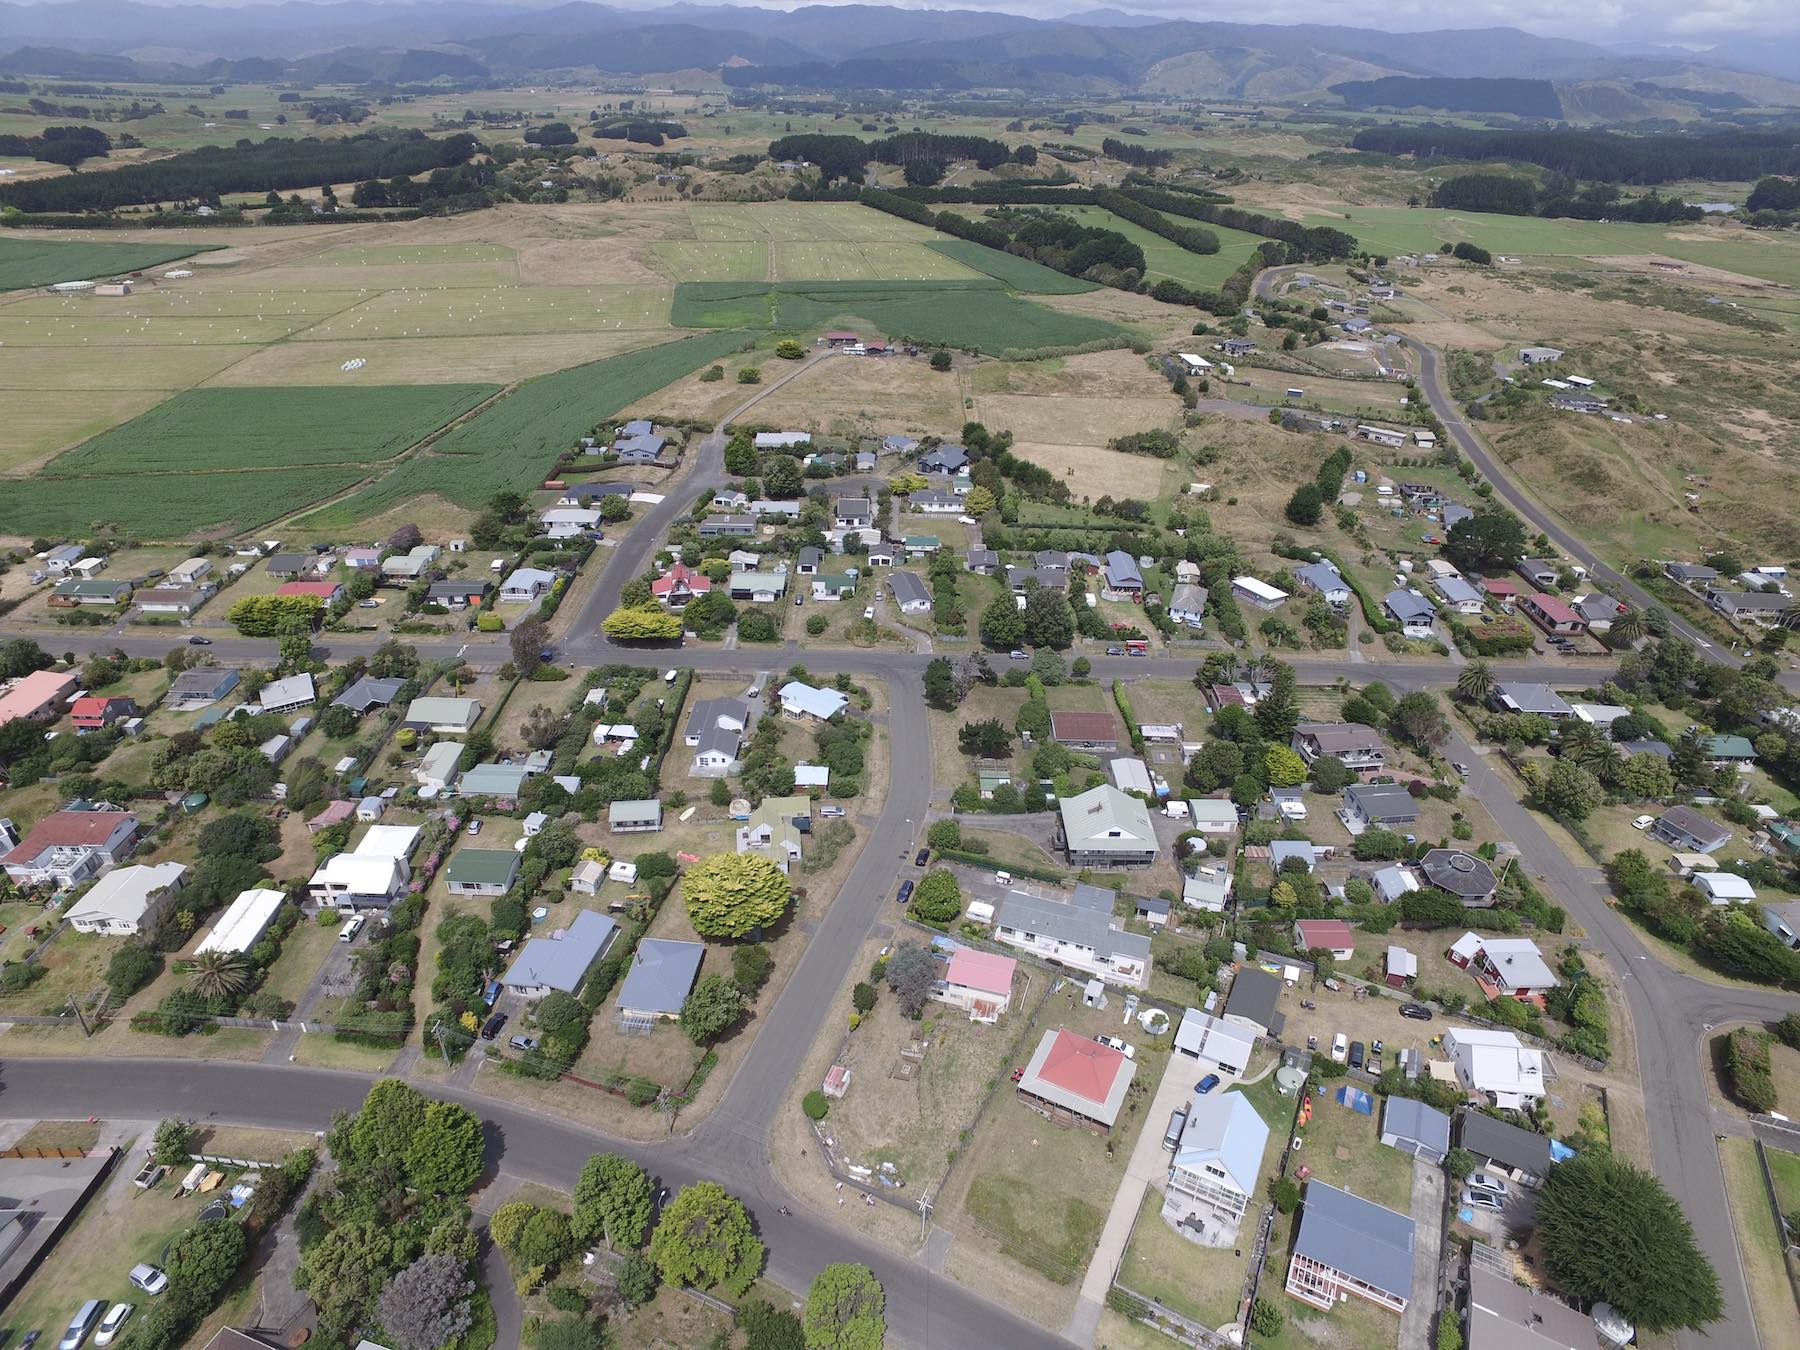 Drone Photo 0399. The village.